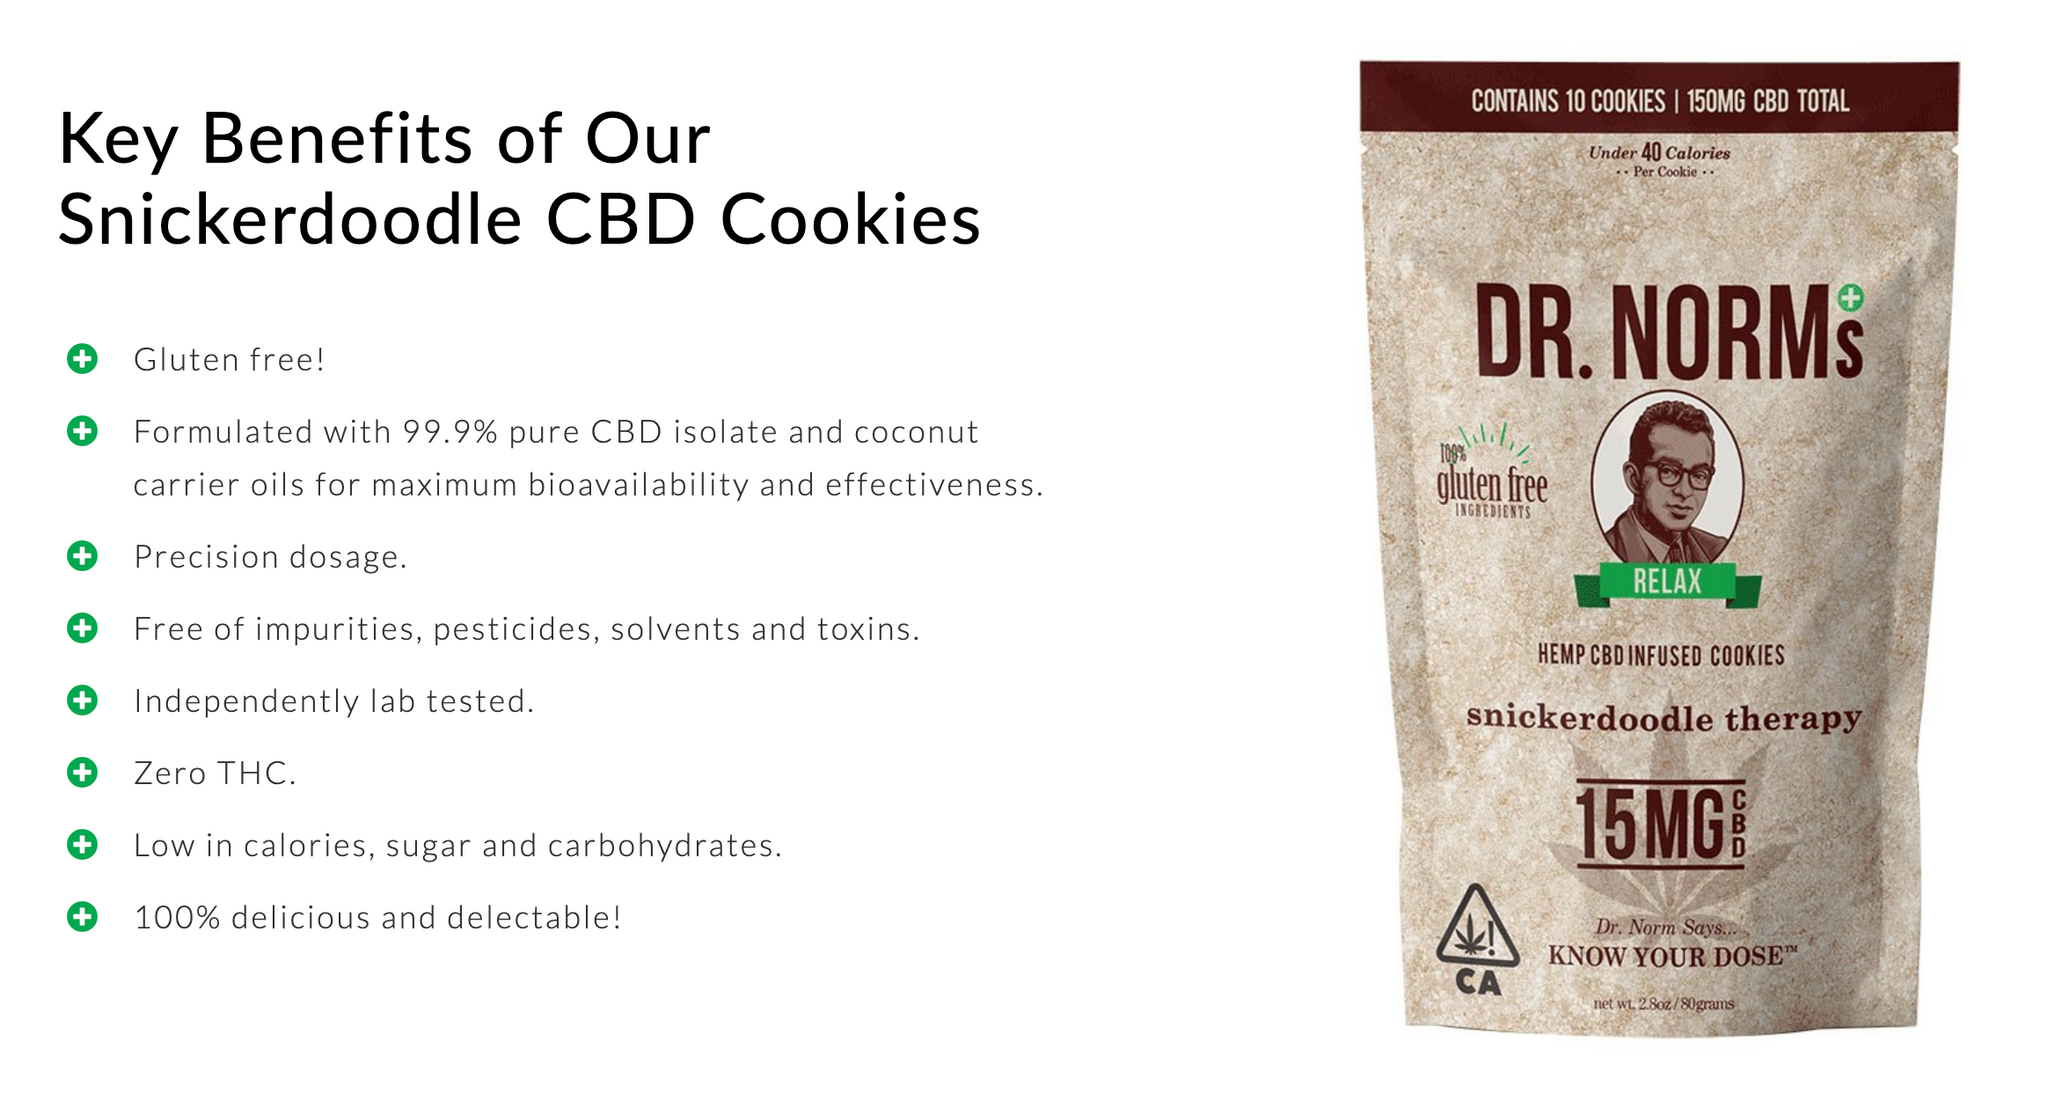 Dr. Norms Snickerdoodle CBD Cookies